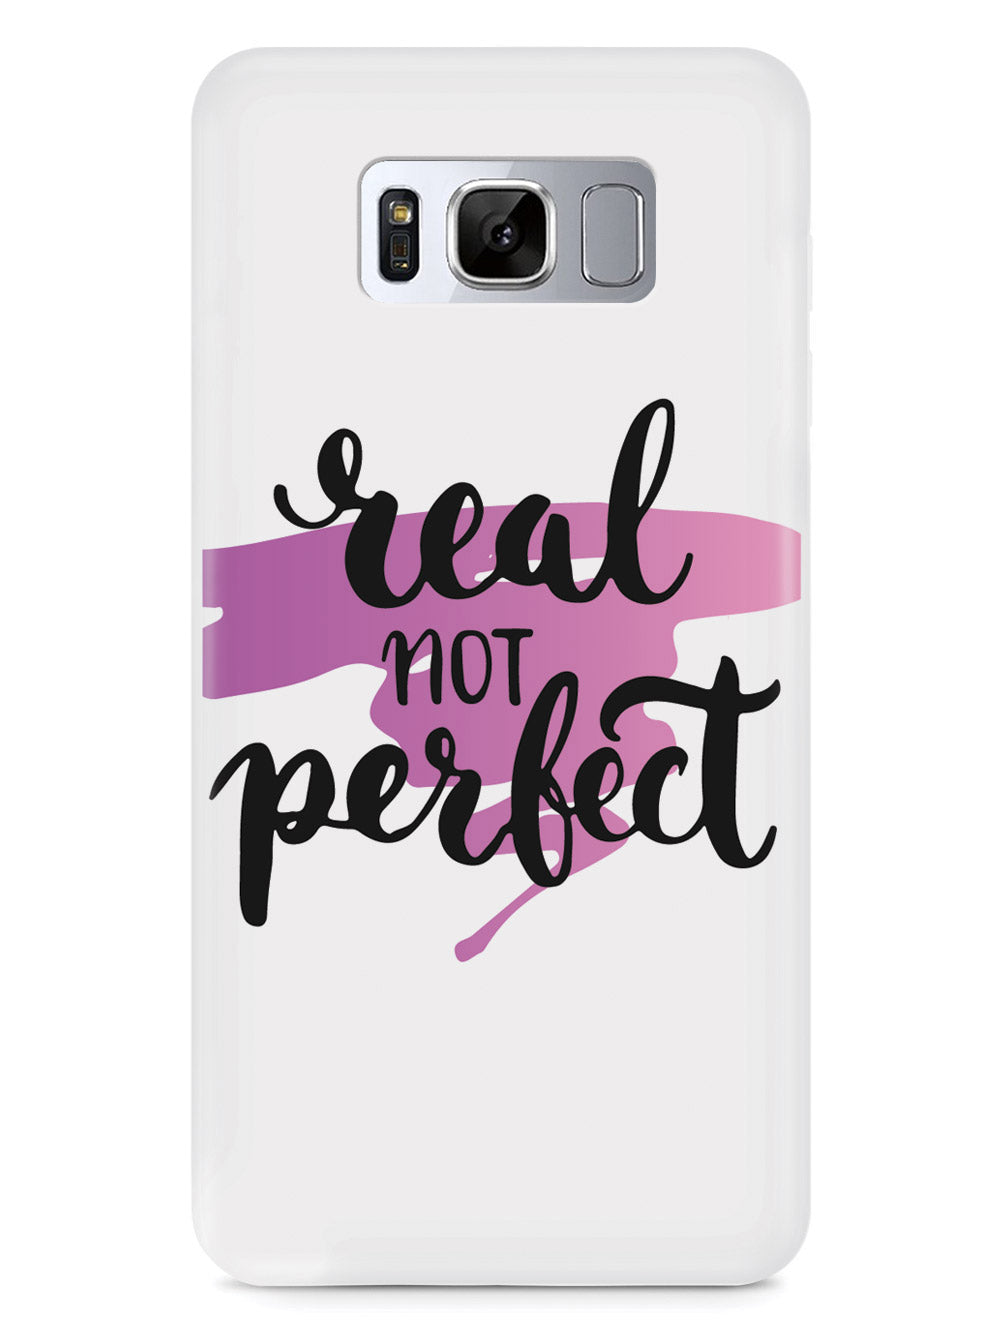 Real not Perfect - Pink Background - White Case